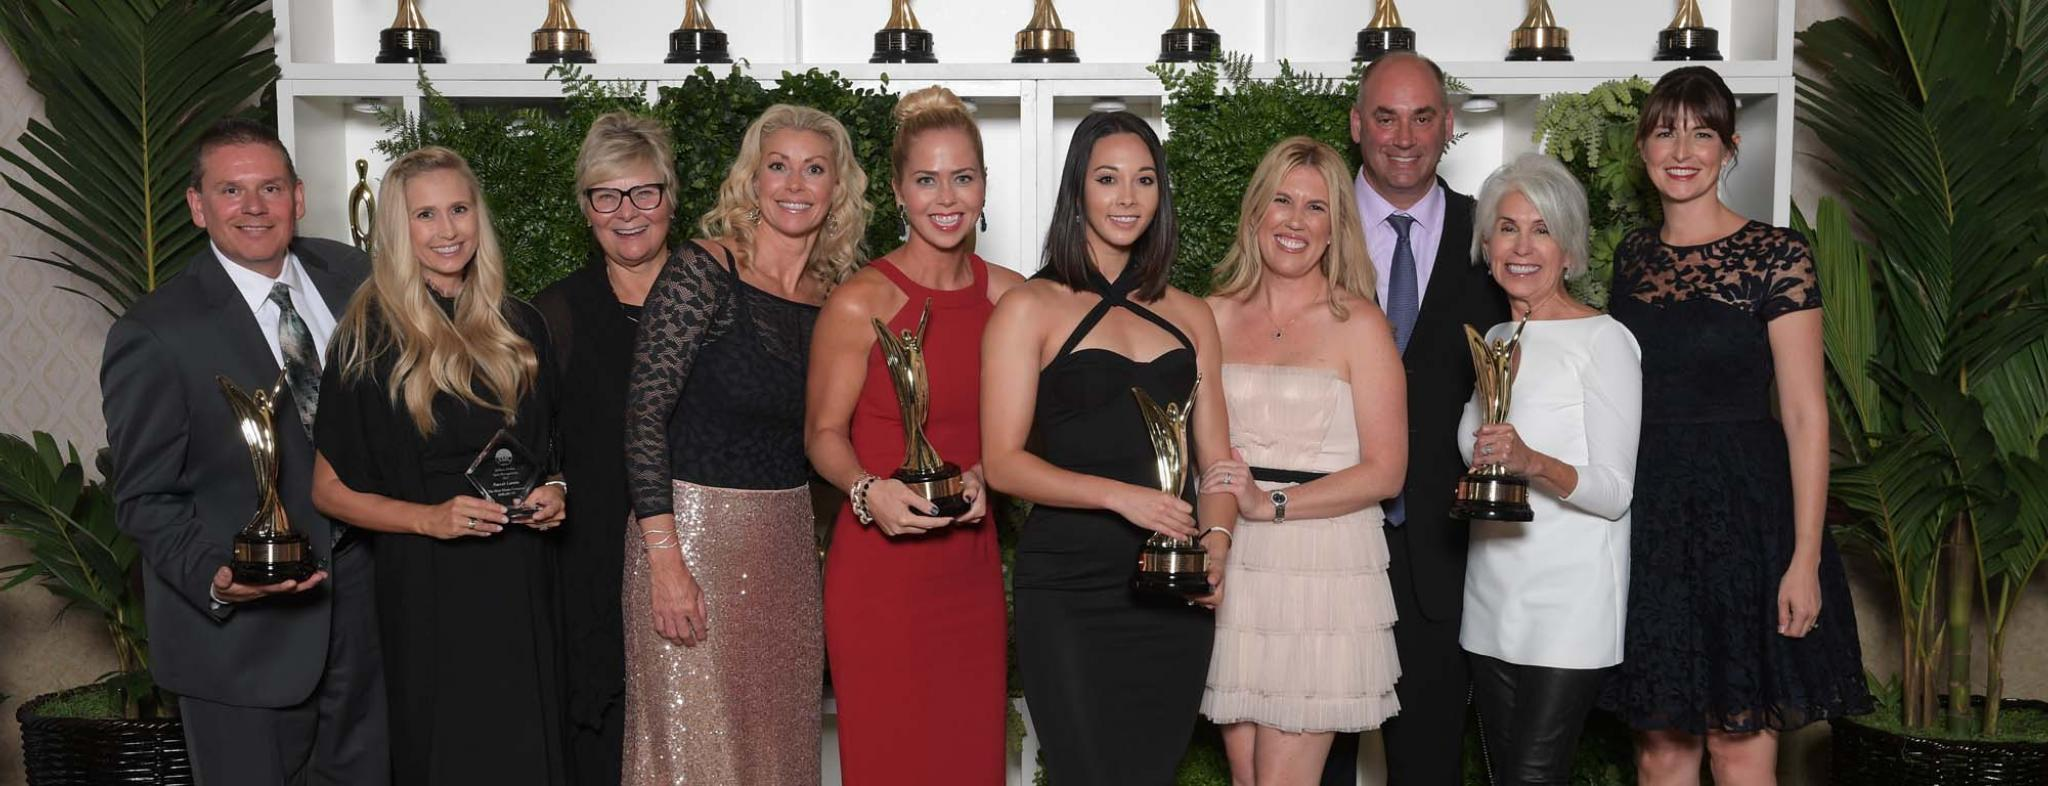 The New Home Company Wins Multiple Honors at 2017 SoCal Awards